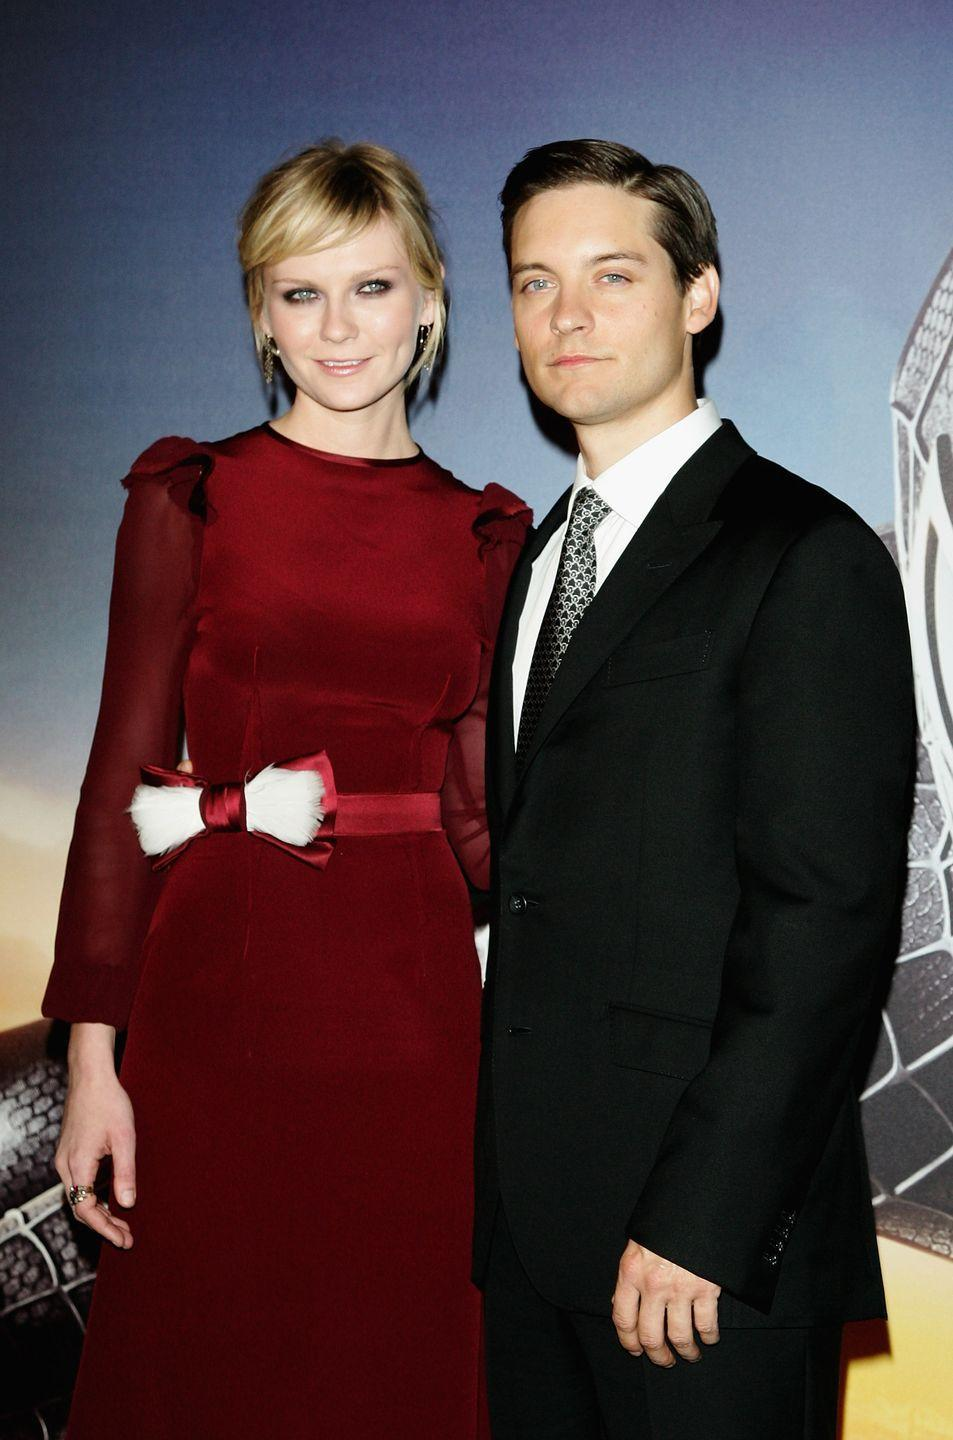 "<p>Tobey Maguire and Kirsten Dunst's upside-down Spider-Man smooch was the kiss that launched a thousand parodies, from <em>Saturday Night Live</em> to <em>The O.C</em>. But turns out the reality behind the iconic scene was less romantic than it seemed in cinemas. </p><p>""I was hanging upside down, it was really late at night, it was raining, and the whole time I had rainwater running up my nose. Then, when Kirsten rolled back the wet mask, she cut off the air completely,"" Maguire <a href=""https://www.tmz.com/2007/04/07/maguire-kissing-dunst-was-no-picnic/"" rel=""nofollow noopener"" target=""_blank"" data-ylk=""slk:told Parade in 2007."" class=""link rapid-noclick-resp"">told <em>Parade</em> in 2007.</a></p>"